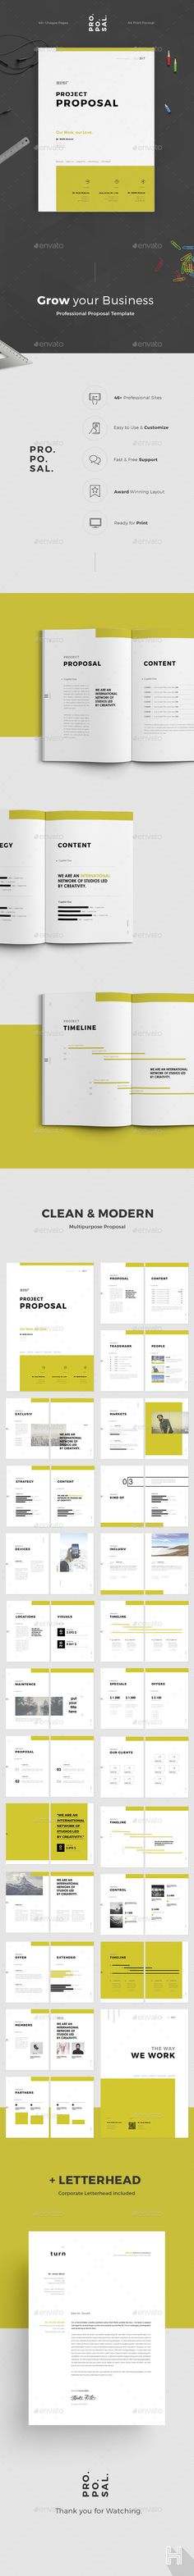 Clean Content Marketing Proposal Marketing proposal, Proposal